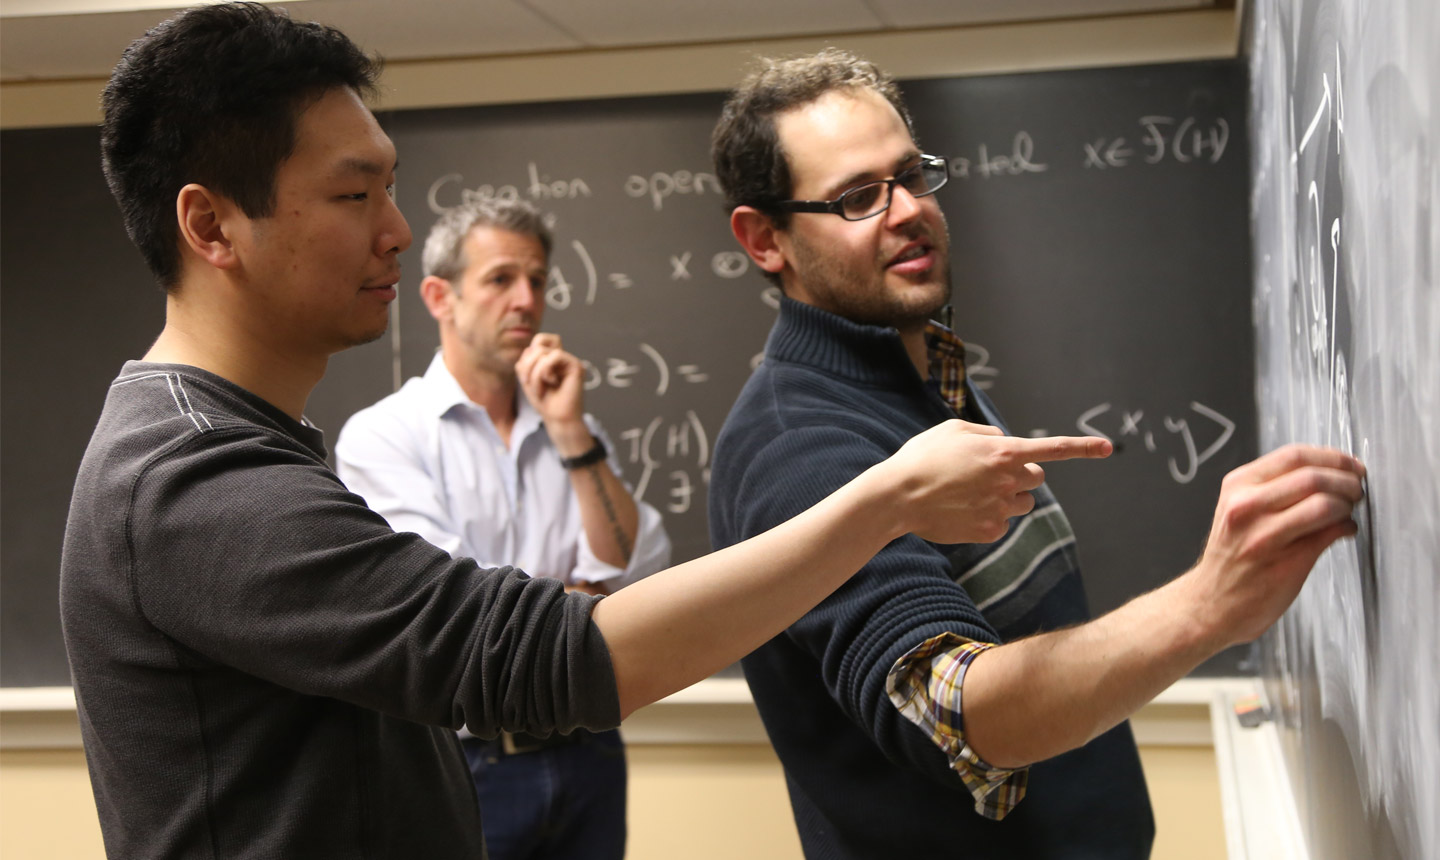 Two students and a professor work on equations on a chalkboard.